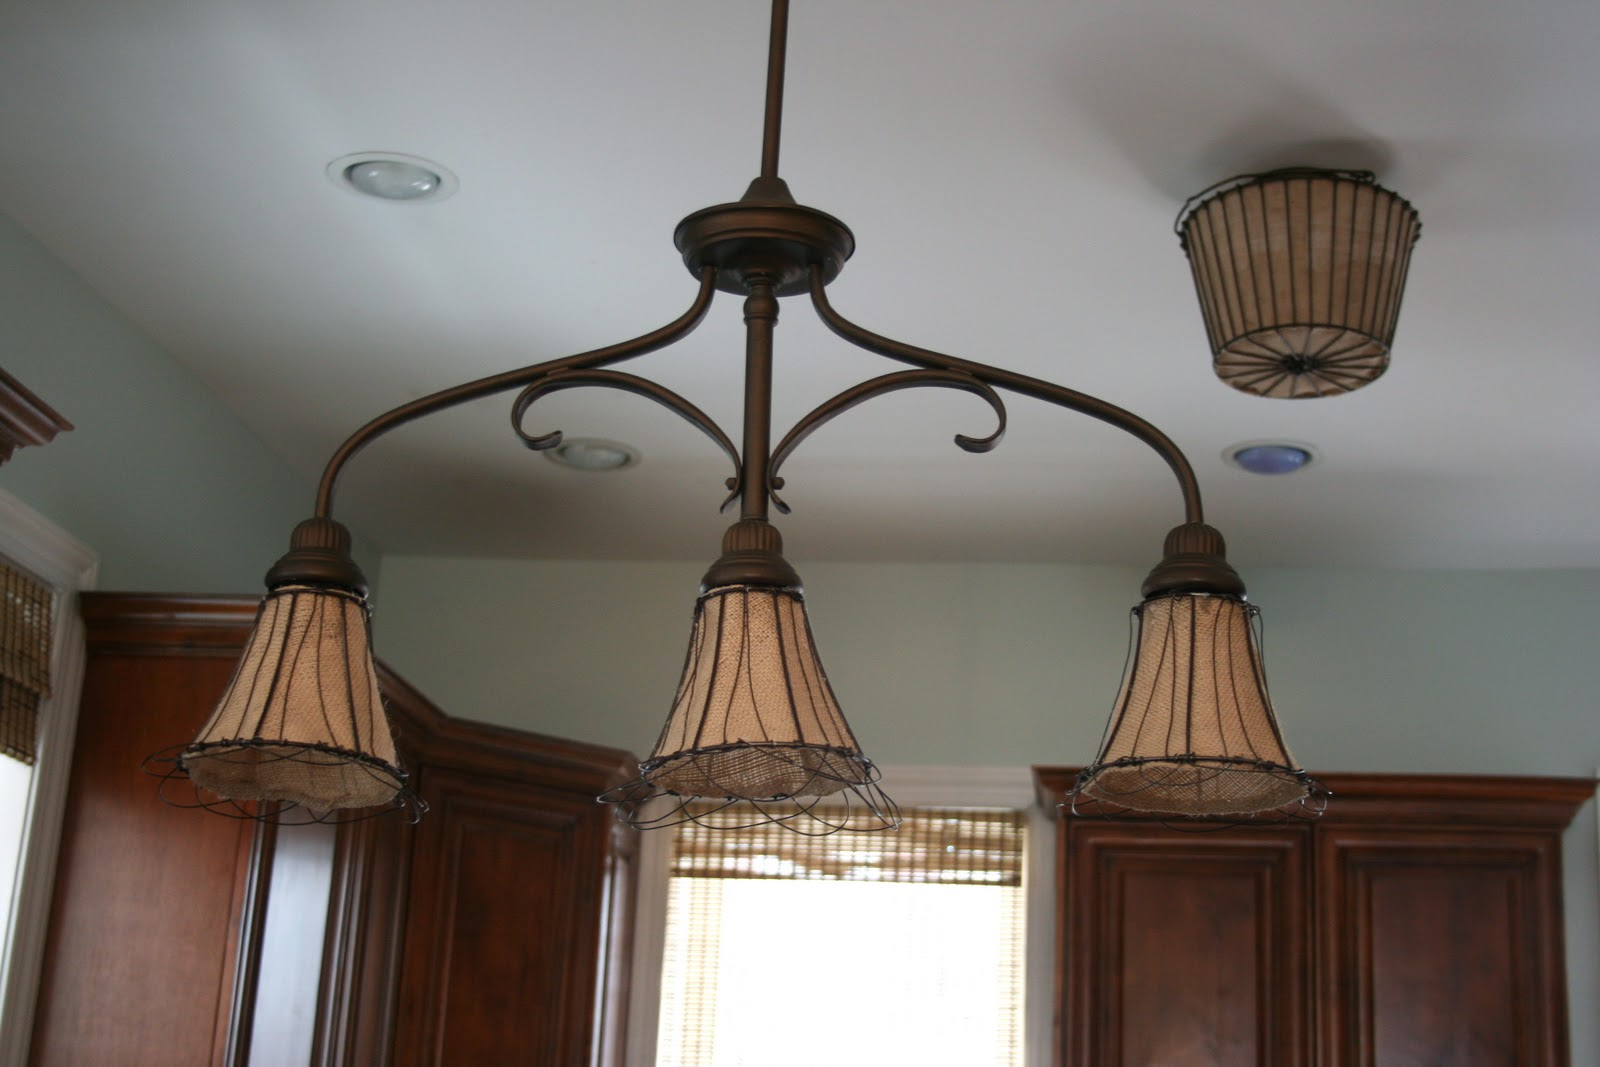 How to make burlap light shades home stories a to z when we rehabbed our home 3 12 years ago i really wanted tiffany lighting everywhere on my first level it was in at the time and i liked how it paid arubaitofo Choice Image